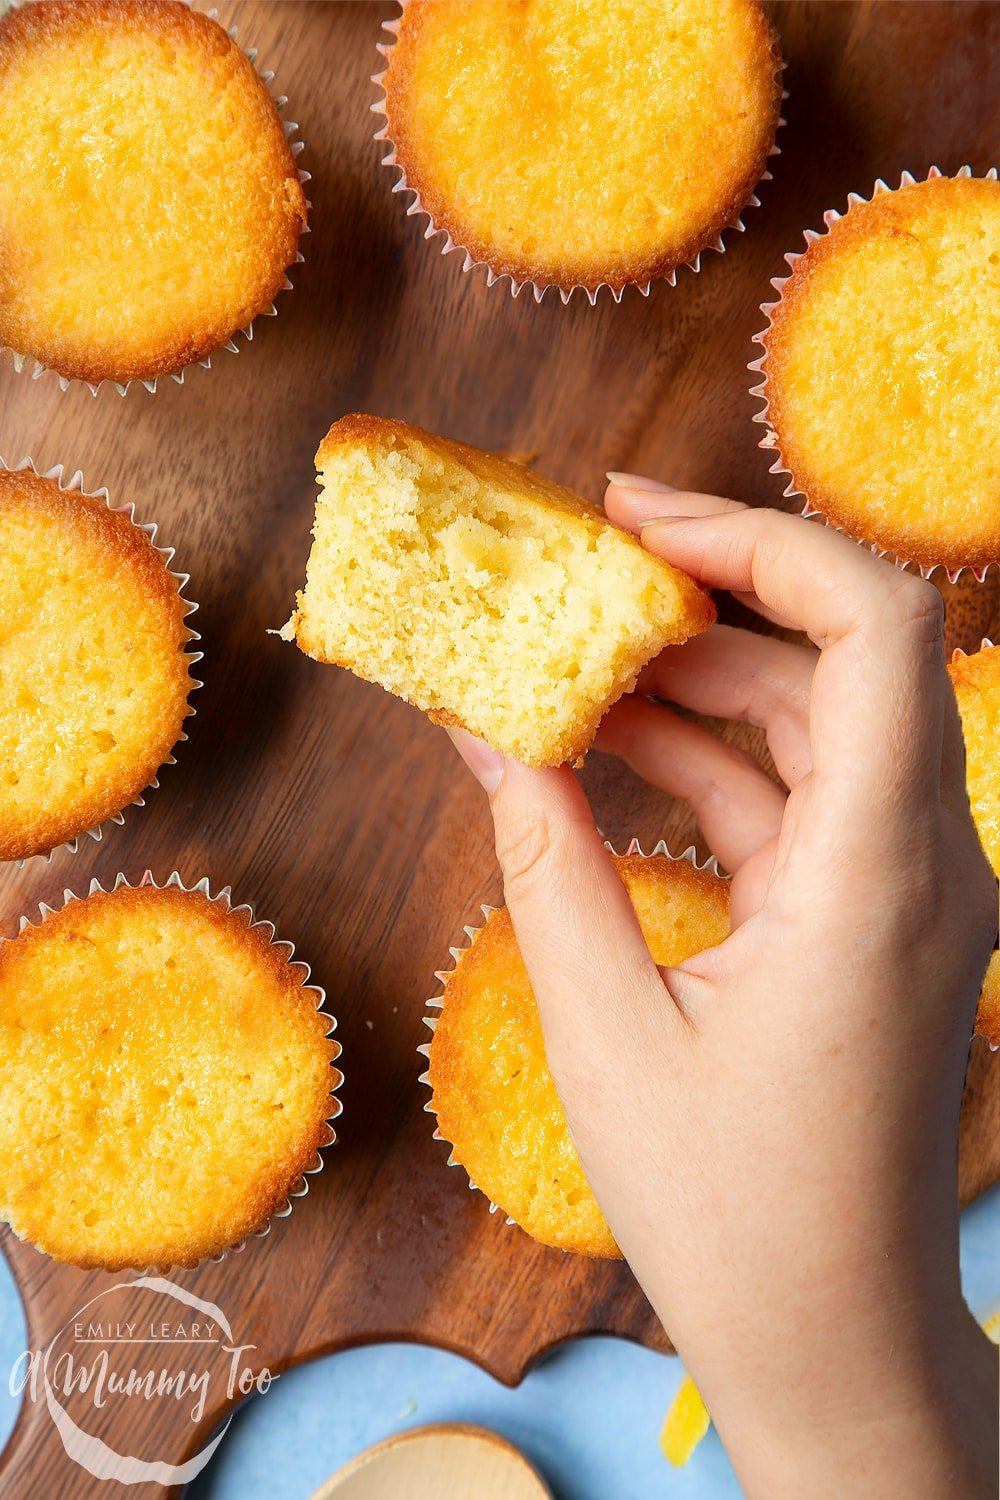 A hand holding a lemon drizzle cupcake with a bite taken out of it. More cupcakes sit on a wooden board in the background.